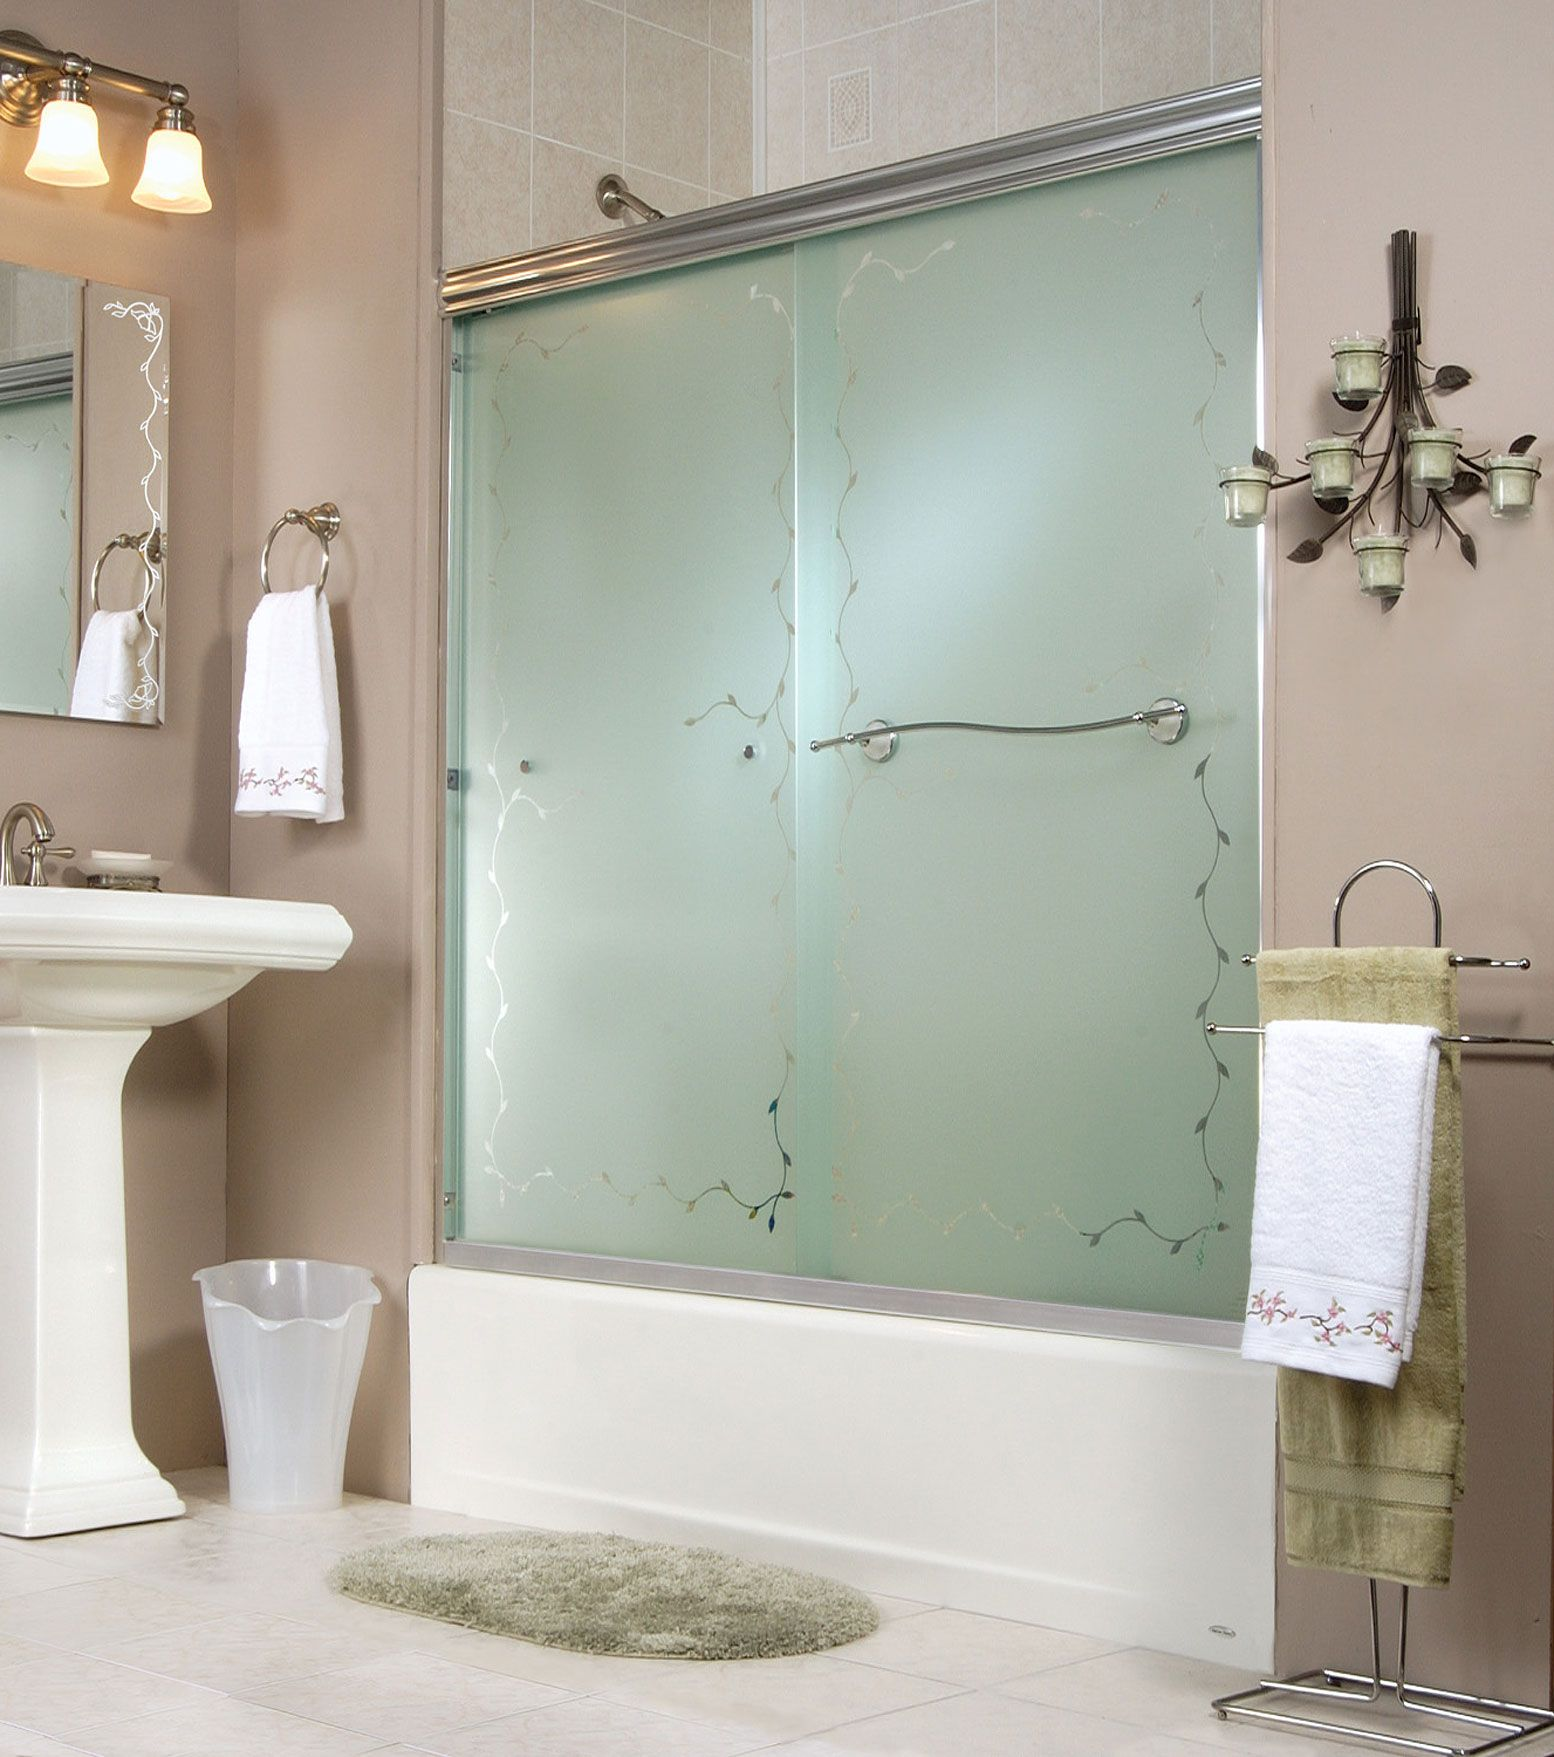 2-panel frameless sliding door Tub showers door - Keystone by MAAX ...